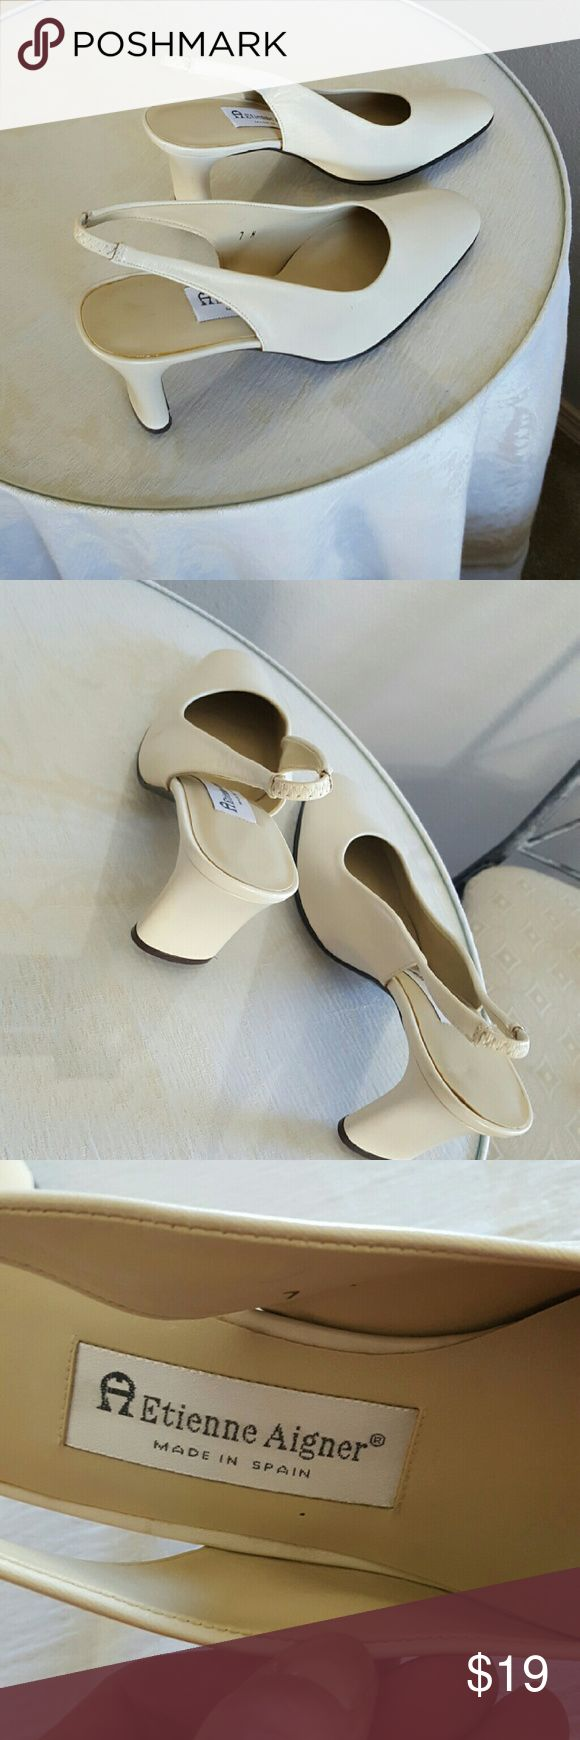 NEW! ETIENNE AIGNER LEATHER Cream Pumps 7M Made in Spain. Brand new, never worn. Excellent condition. Elastic piece on strap for comfort. Etienne Aigner Shoes Heels